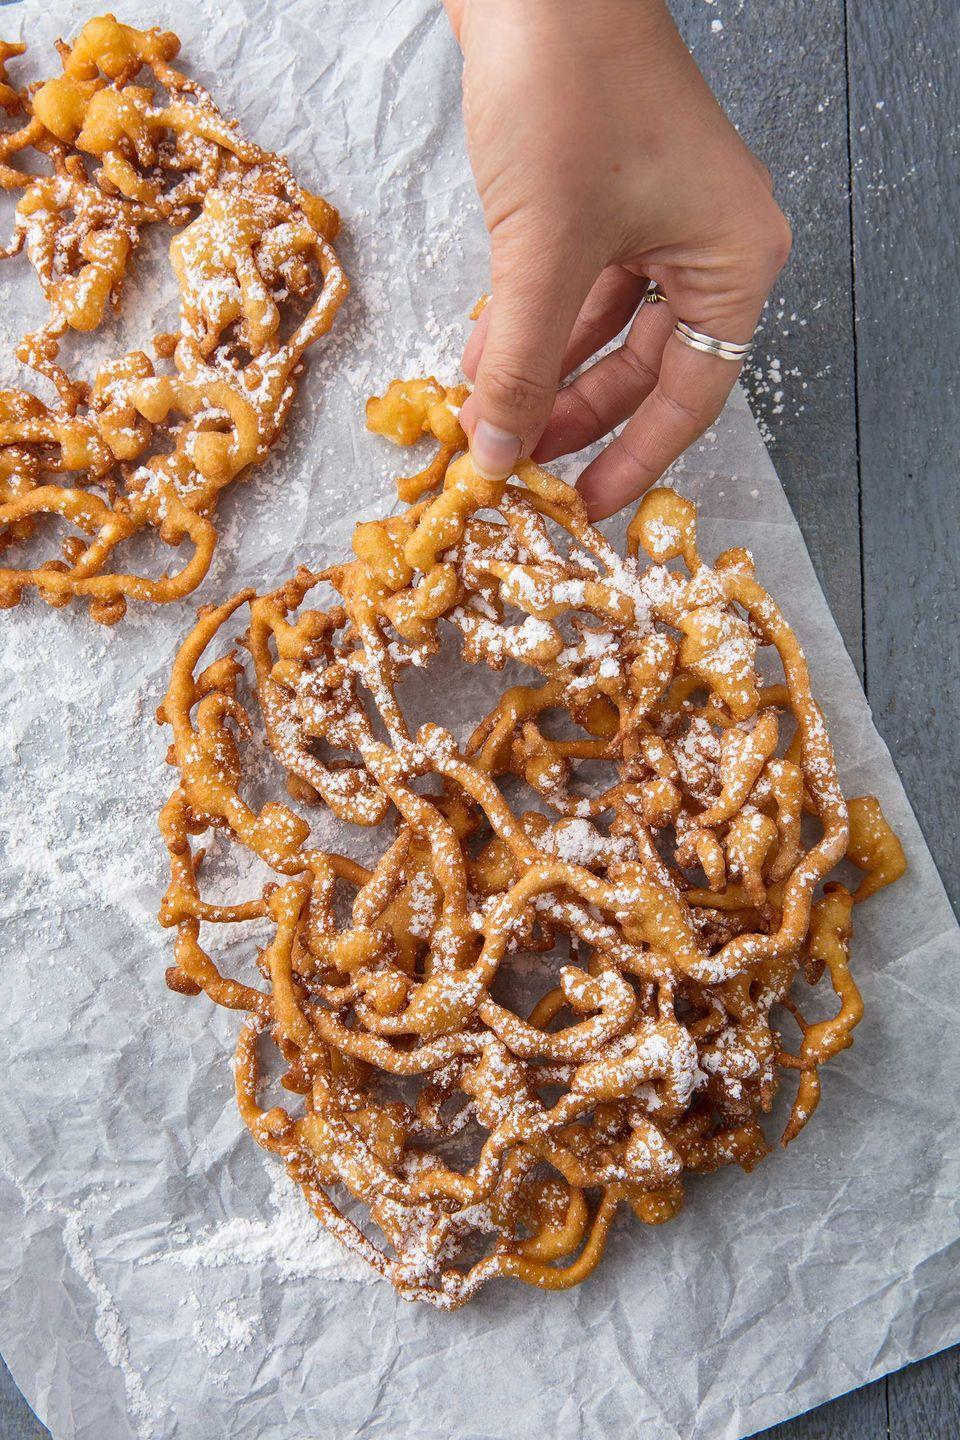 """<p>The king of state fair treats.</p><p>Get the recipe from <a href=""""https://www.delish.com/cooking/recipe-ideas/a20136641/homemade-funnel-cake-recipe/"""" rel=""""nofollow noopener"""" target=""""_blank"""" data-ylk=""""slk:Delish."""" class=""""link rapid-noclick-resp"""">Delish.</a></p><p><a class=""""link rapid-noclick-resp"""" href=""""https://www.amazon.com/Polder-THM-515-Stainless-Steel-Thermometer/dp/B001FB6IFY/?tag=syn-yahoo-20&ascsubtag=%5Bartid%7C1782.g.1631%5Bsrc%7Cyahoo-us"""" rel=""""nofollow noopener"""" target=""""_blank"""" data-ylk=""""slk:BUY NOW"""">BUY NOW</a> <strong><em>Polder Candy Thermometer, $15, amazon.com</em></strong></p>"""